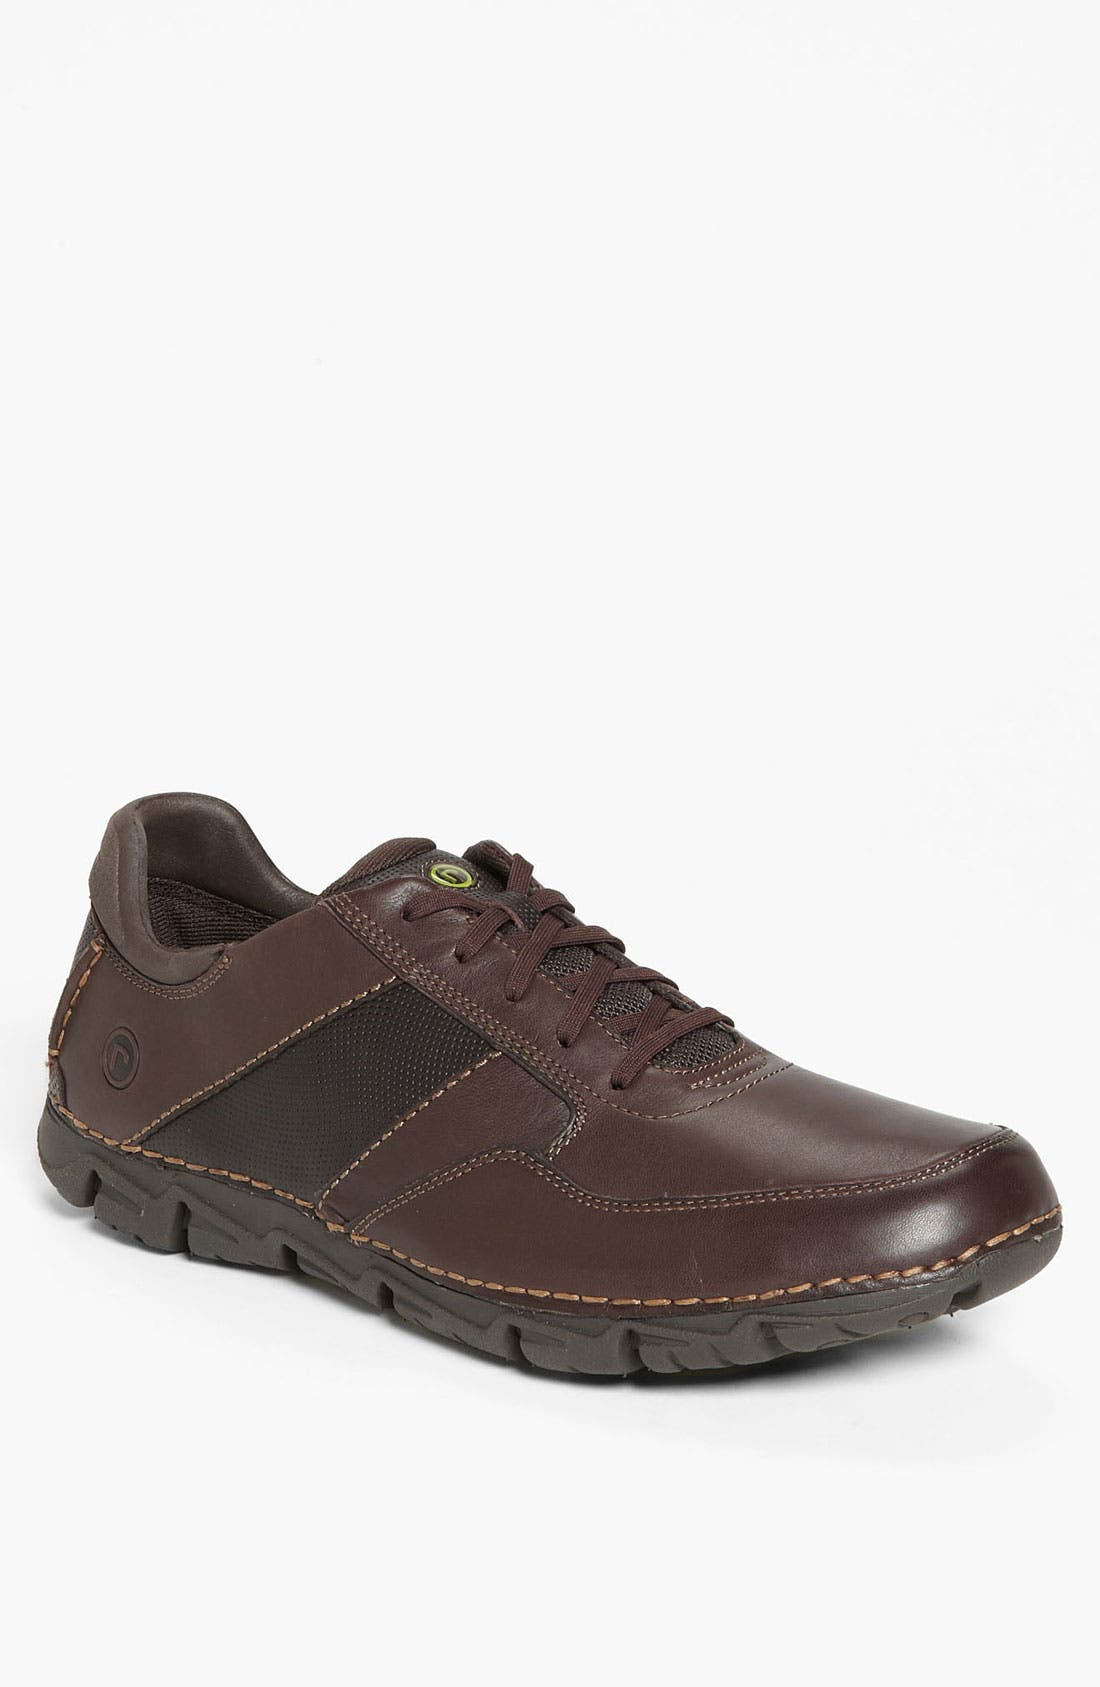 Alternate Image 1 Selected - Rockport 'RocSports Lite - Mudguard' Lace Up